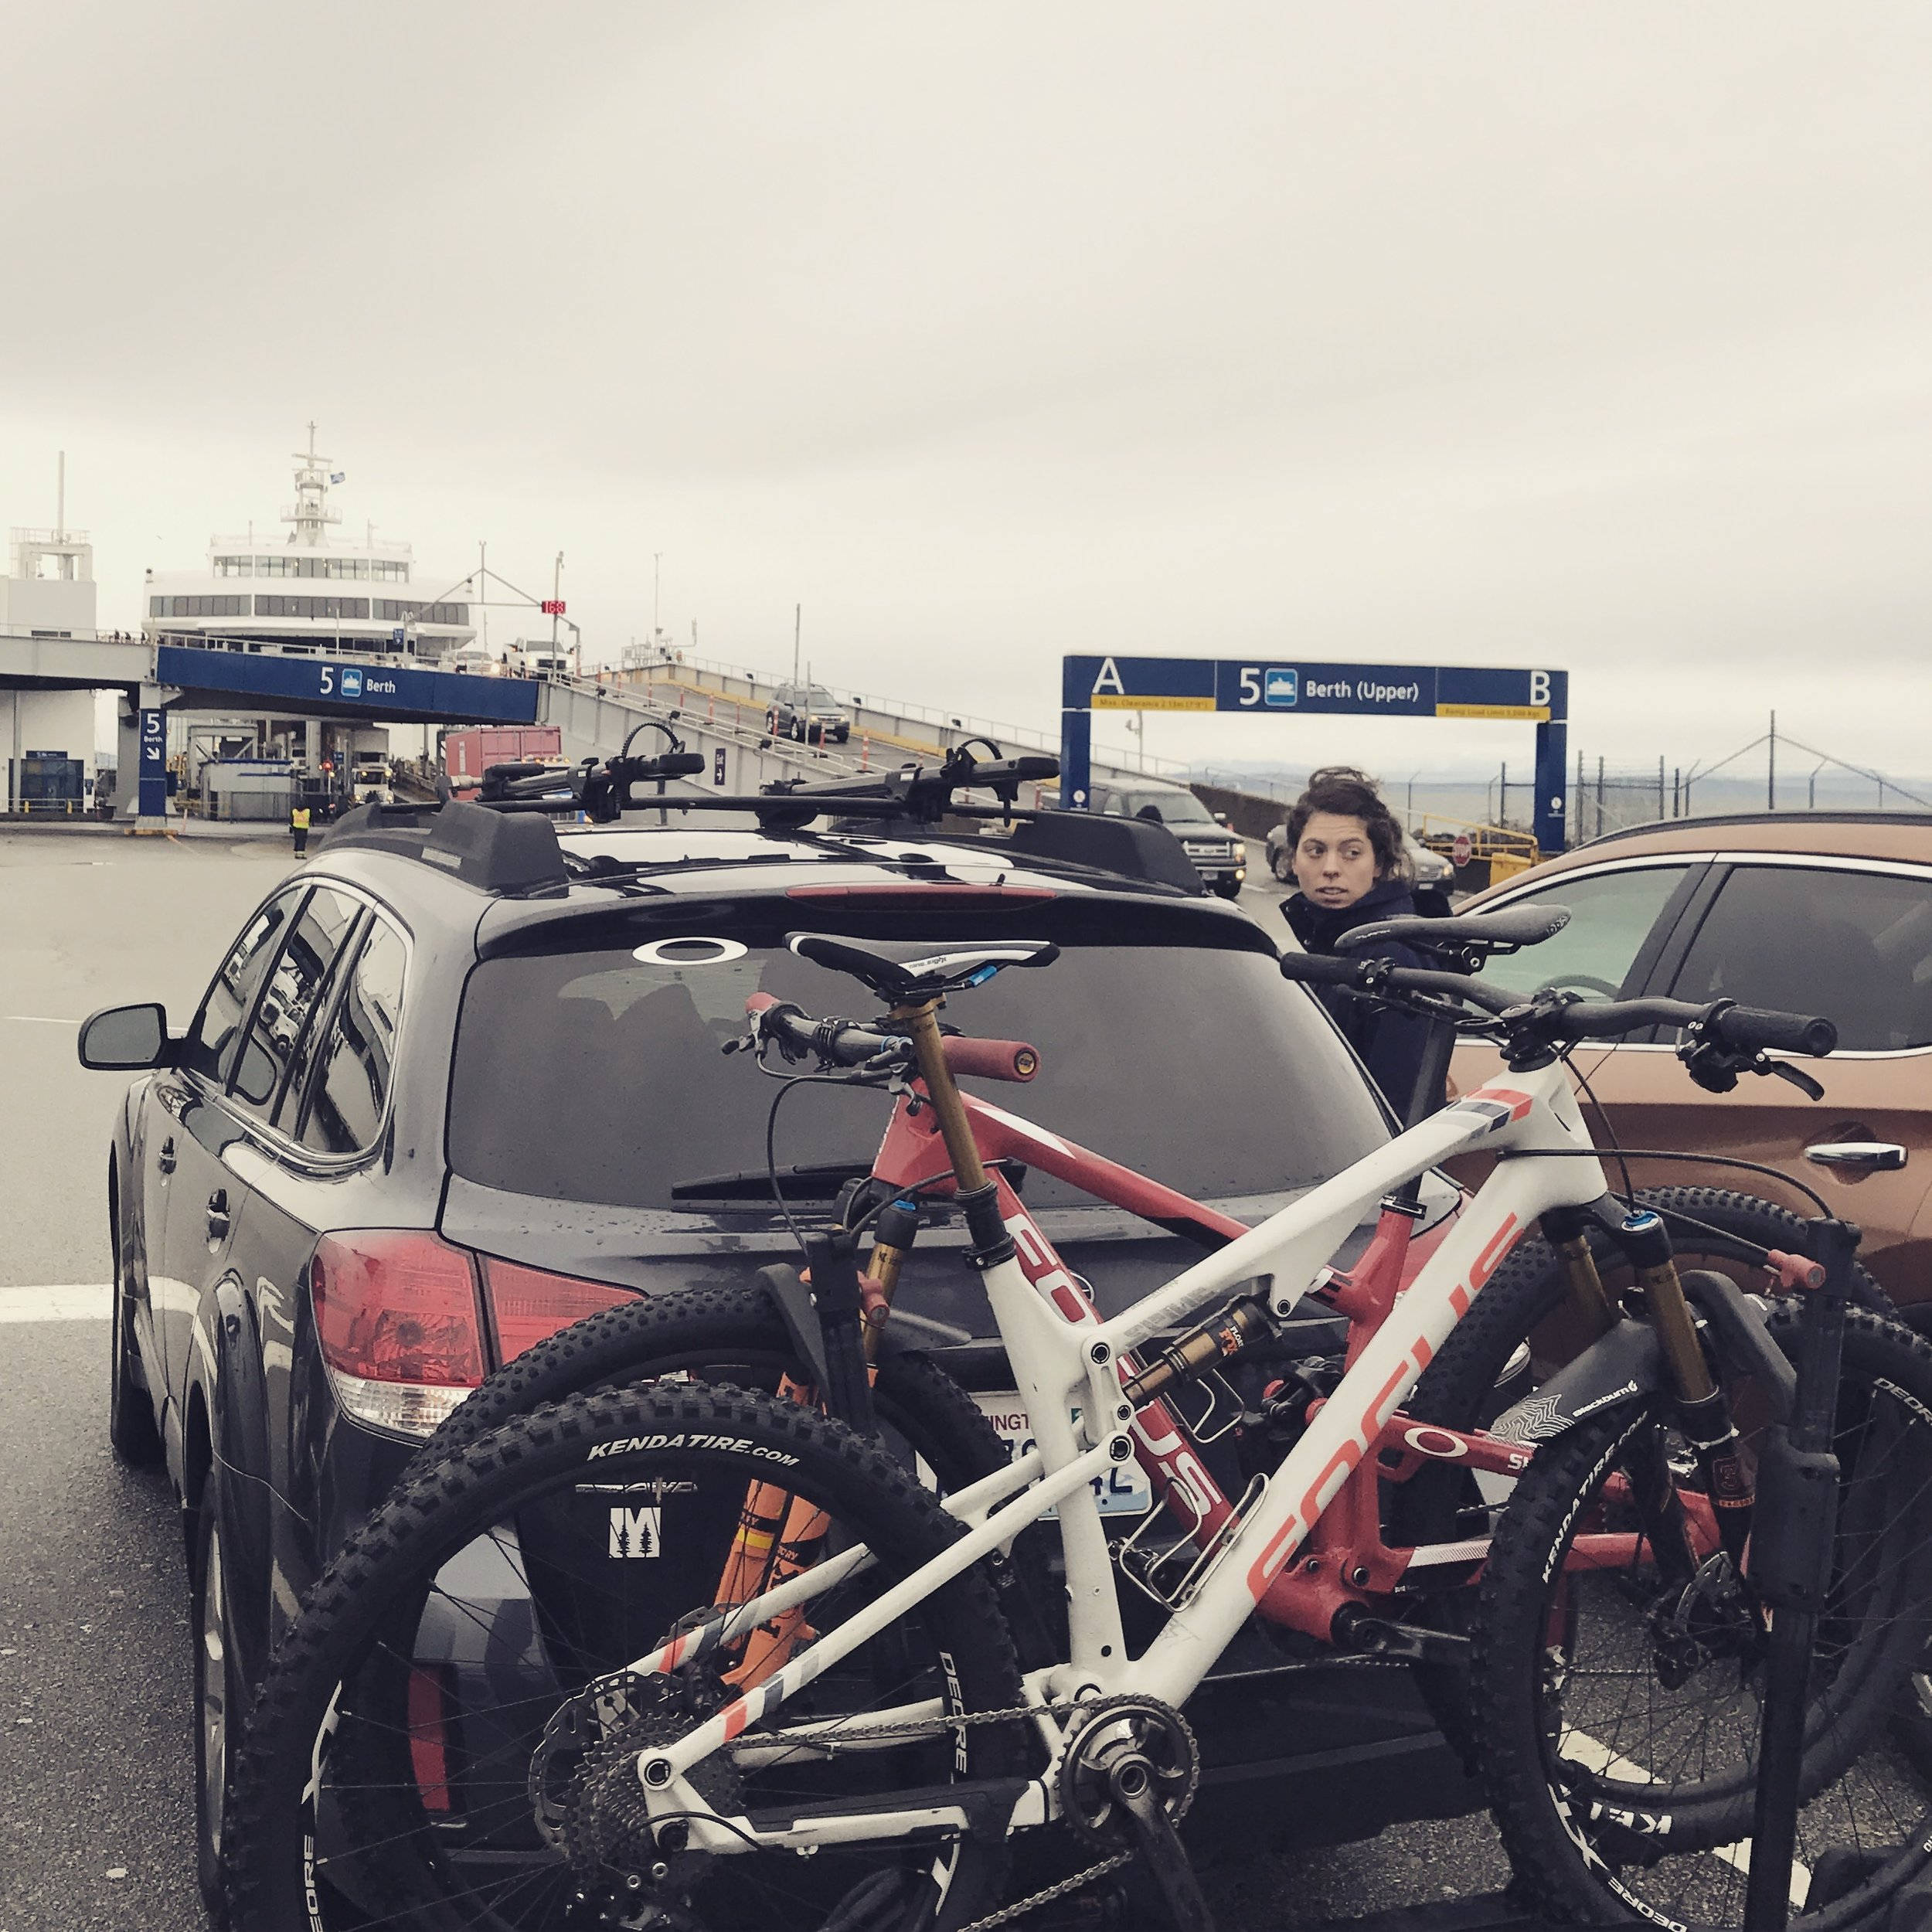 Two Bikes, because well, two races! Love the BC Ferry system too.